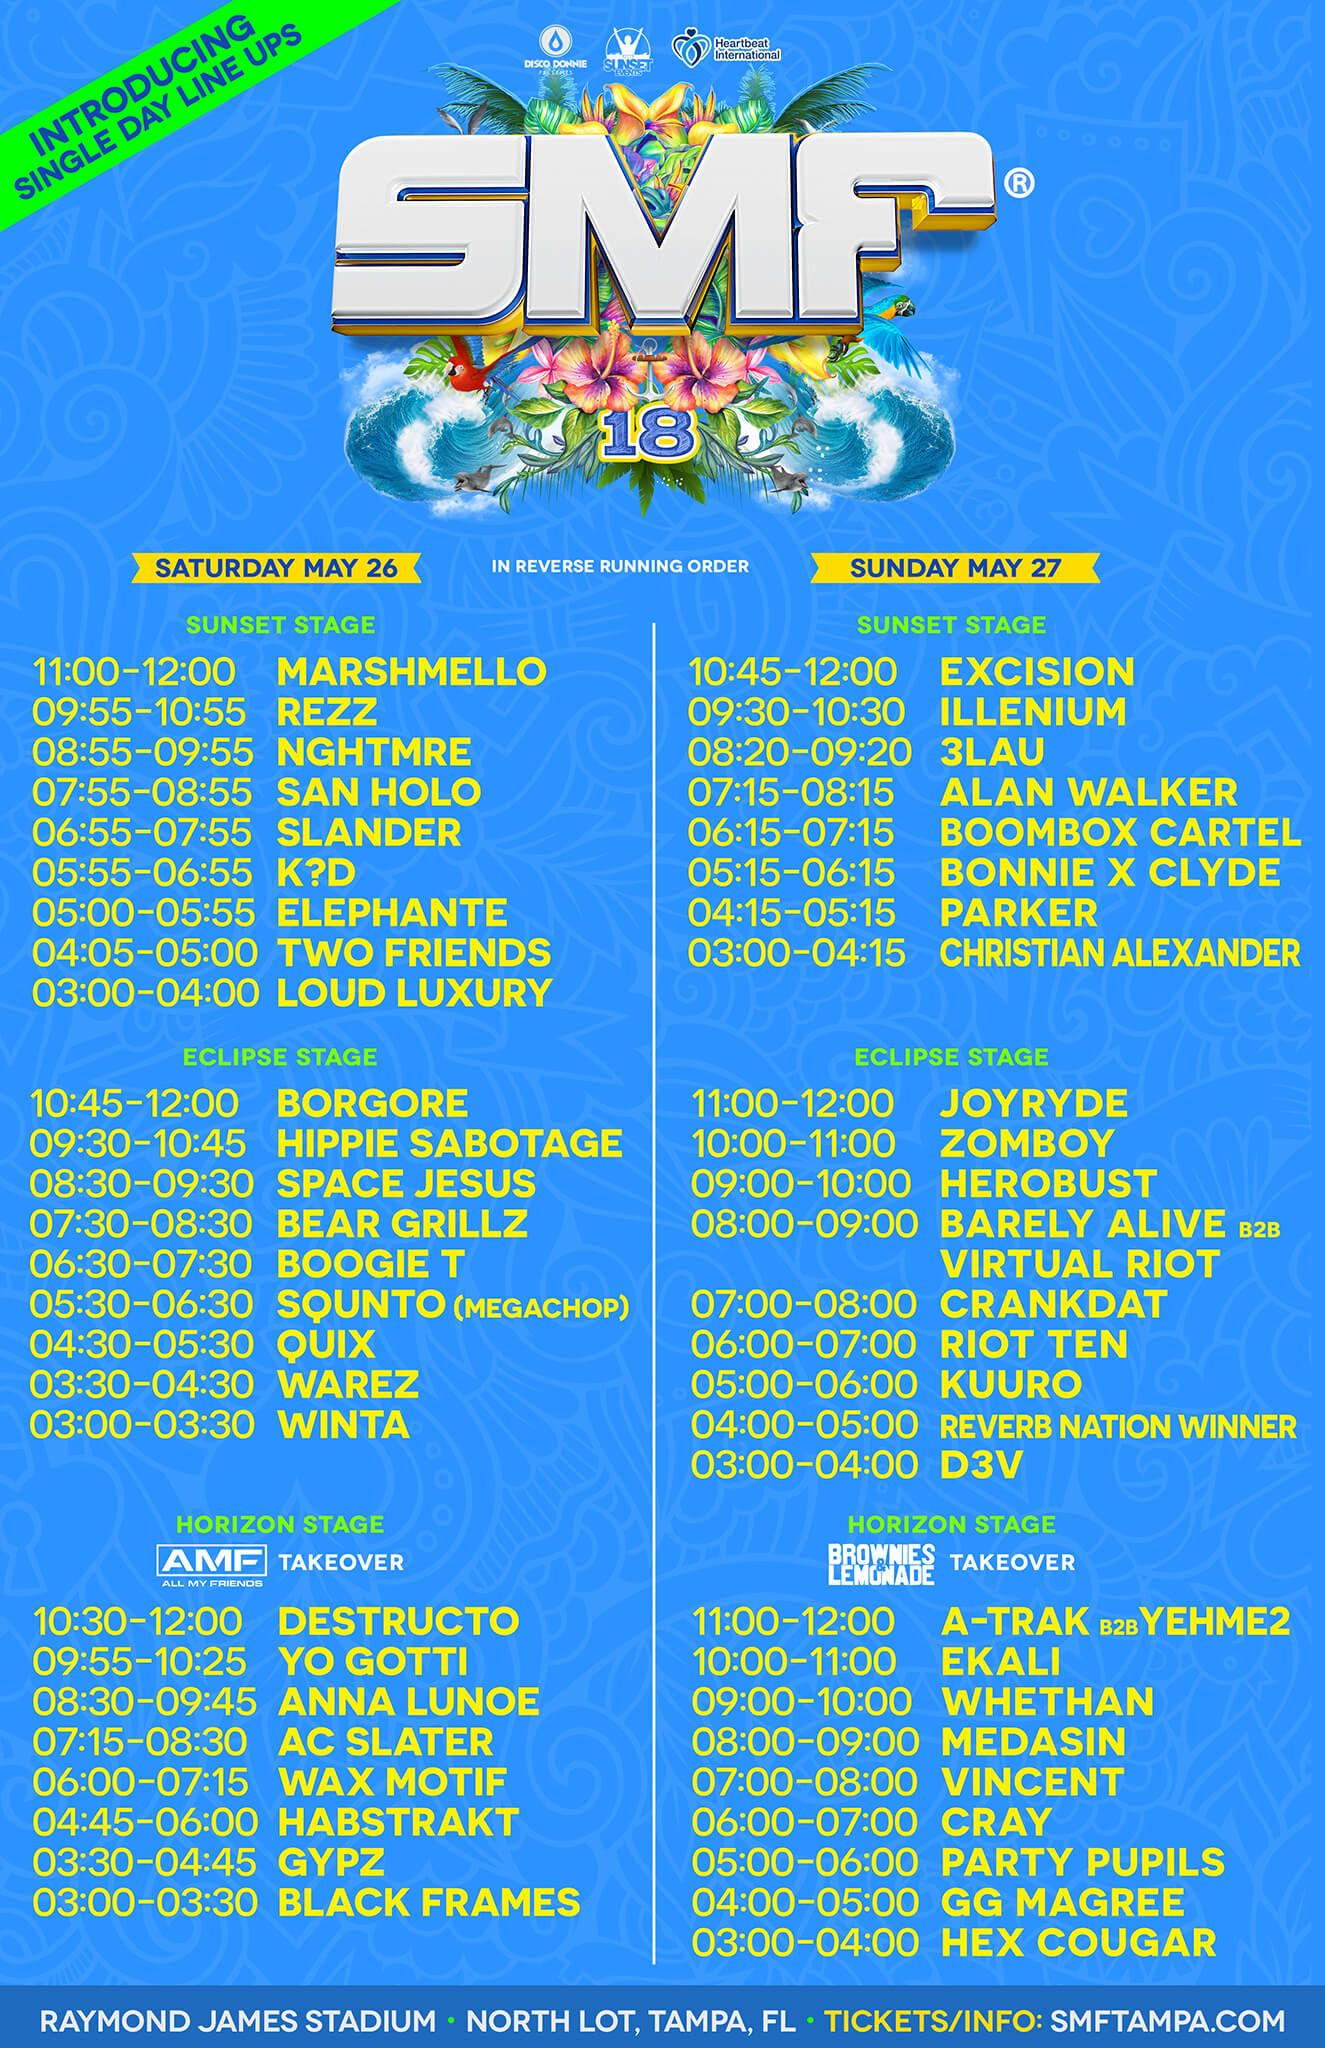 Pin By Sanigirl Replace Ew W Aah On Music Festivals Sunset Music Festival Festival Guide Music Festival